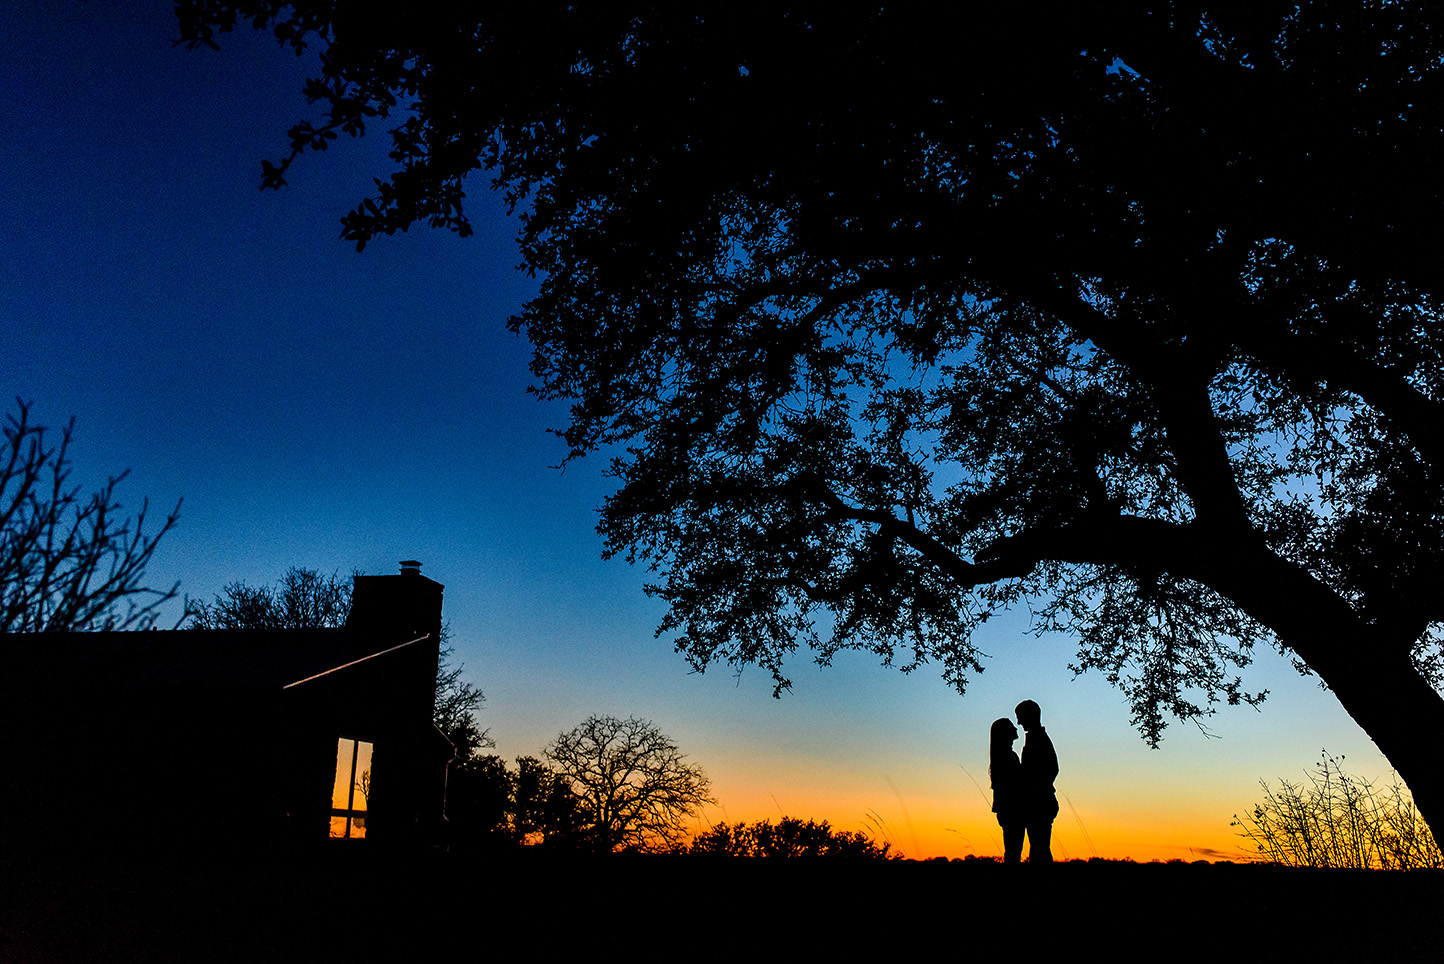 Great sunset silhouette shot of a couple